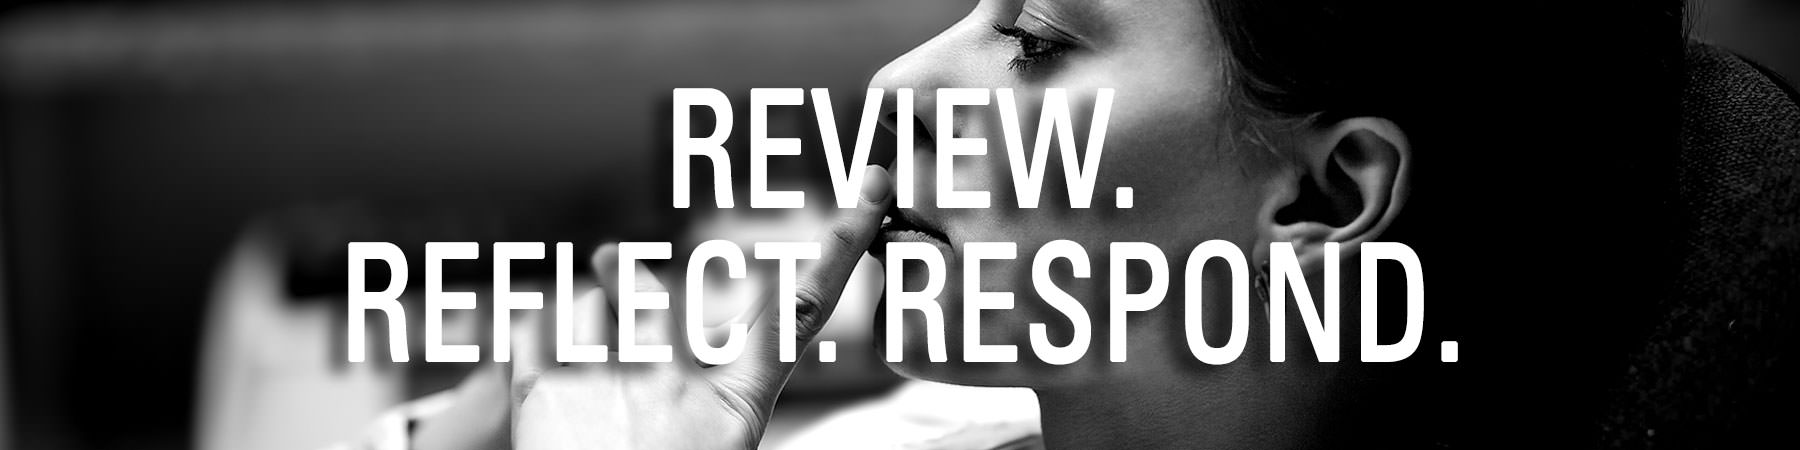 Review Reflect Respond